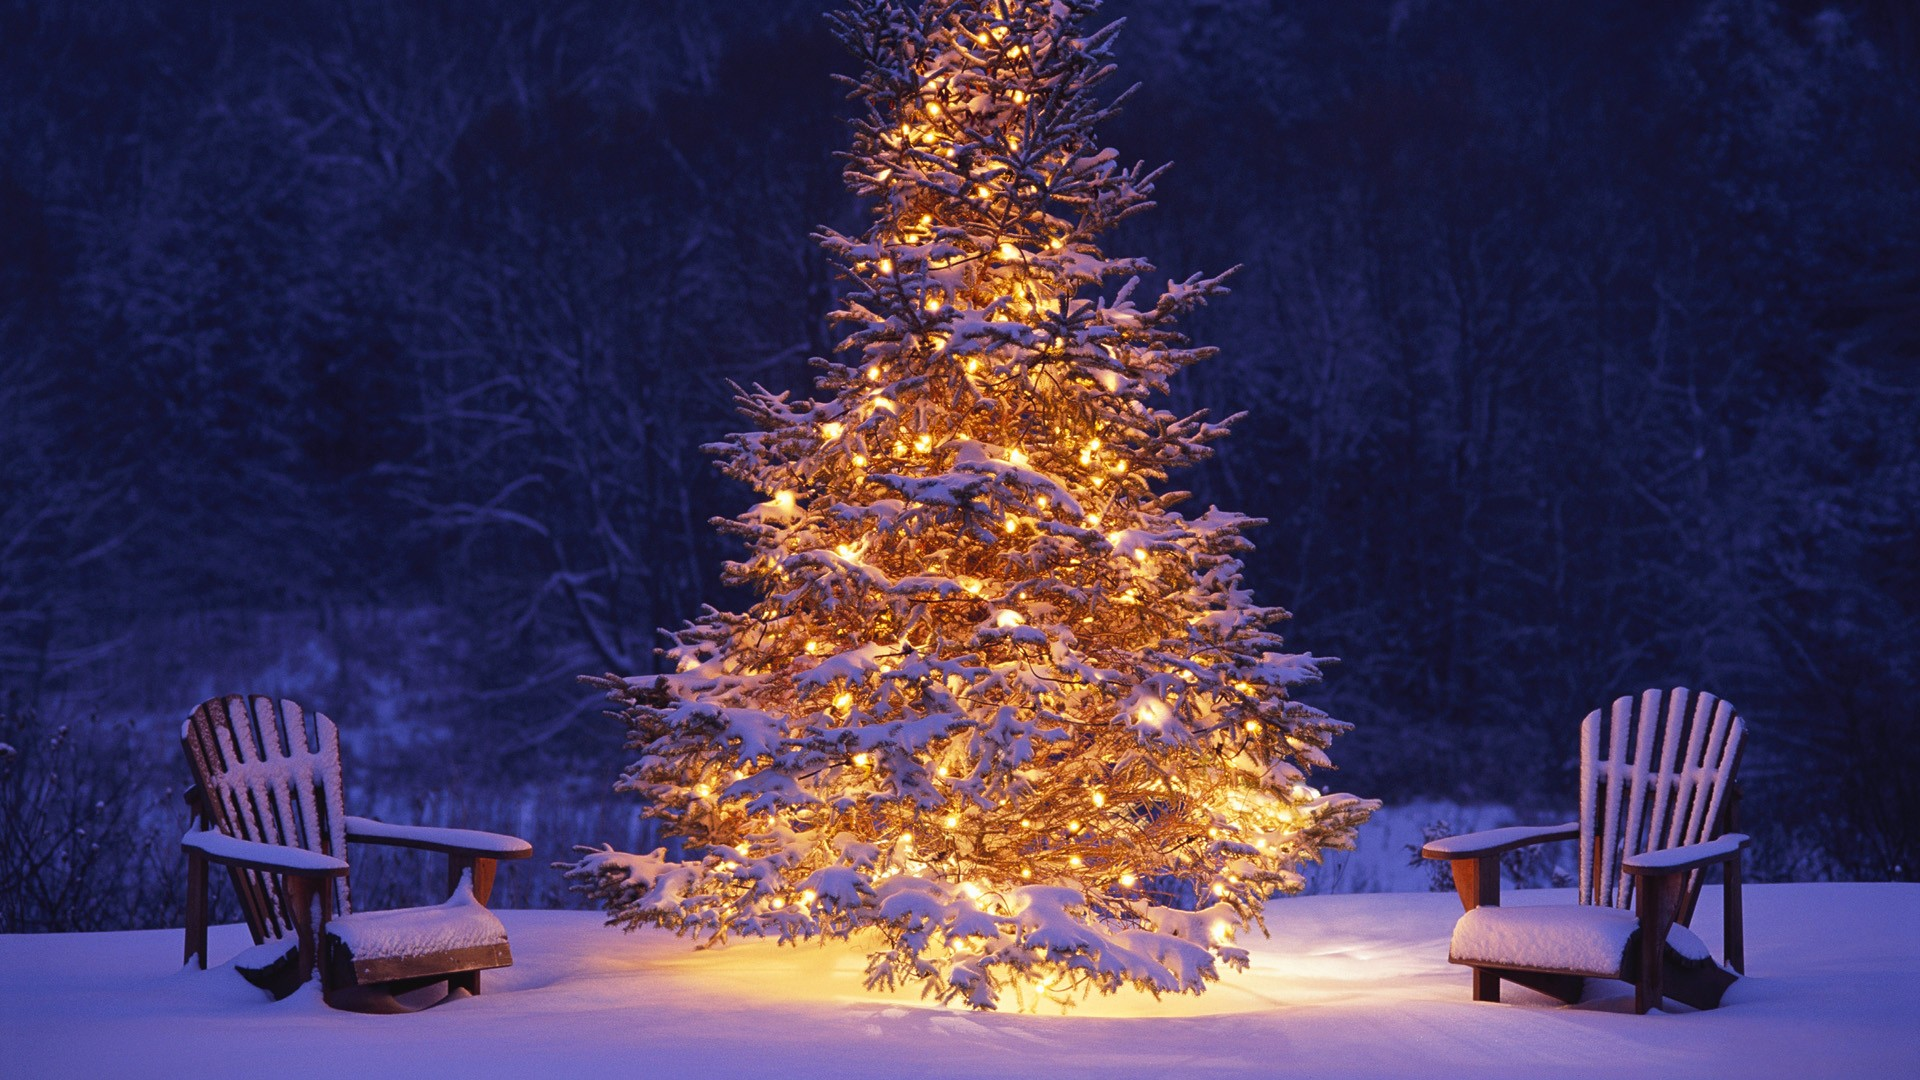 Merry-Christmas-hd-Wallpapers-Images-Free-Download-1